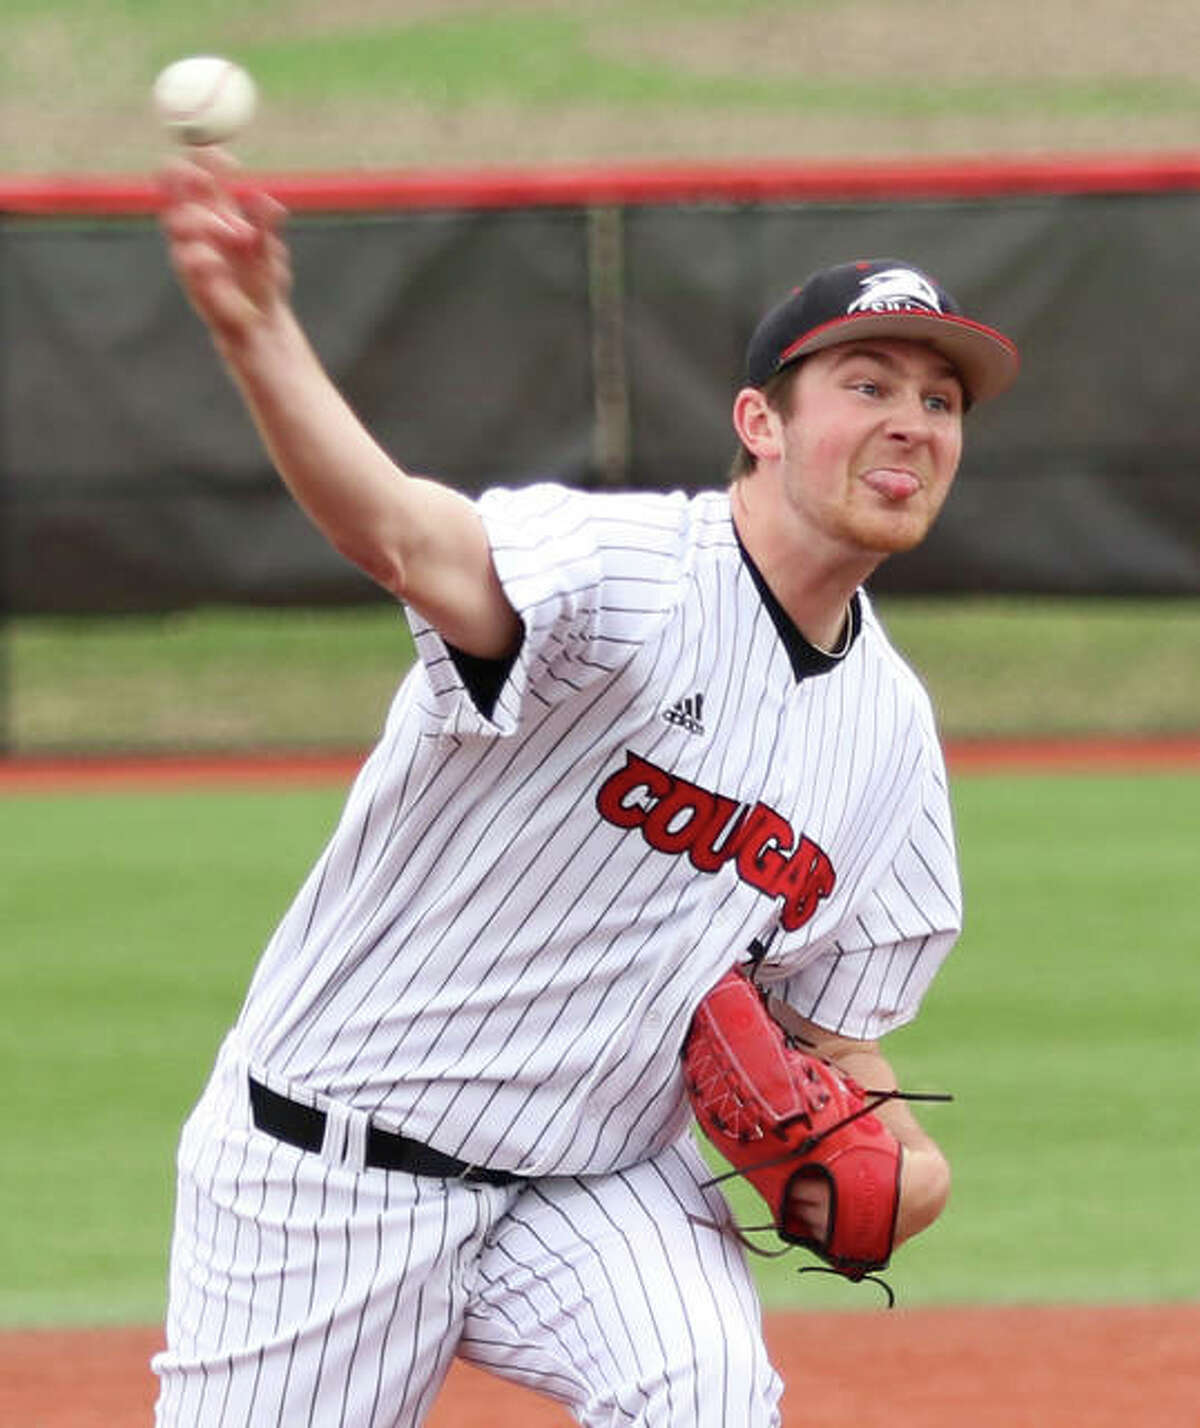 Collin Baumgartner delivers a pitch to the plate during a 2019 start for SIUE at Simmons Baseball Complex in Edwardsville. The former Telegraph Player of the Year at Southwestern underwent Tommy John surgery last week.